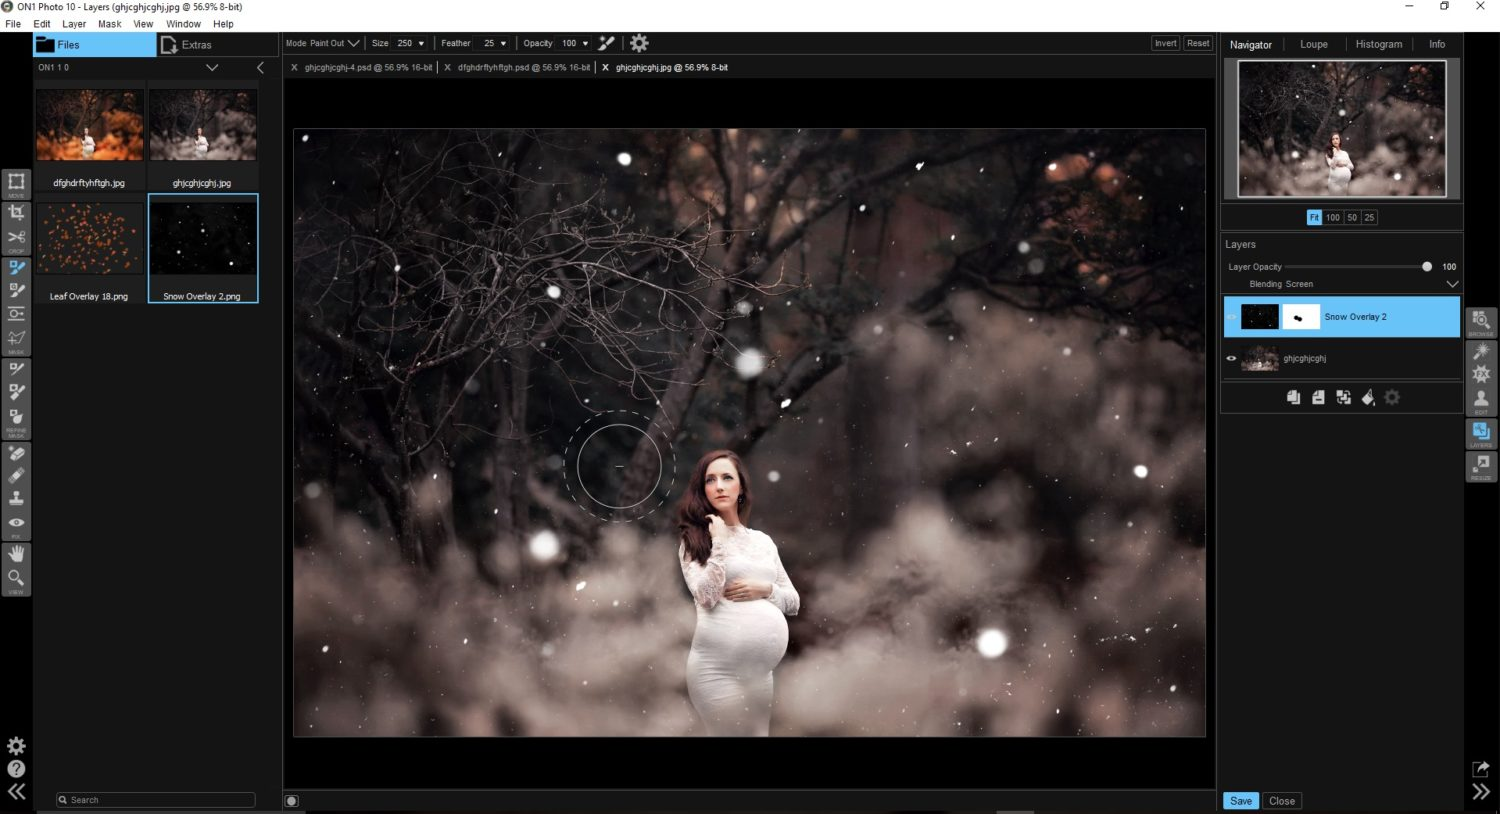 use-overlays-lightroom-using-on1-photo-10-plugin